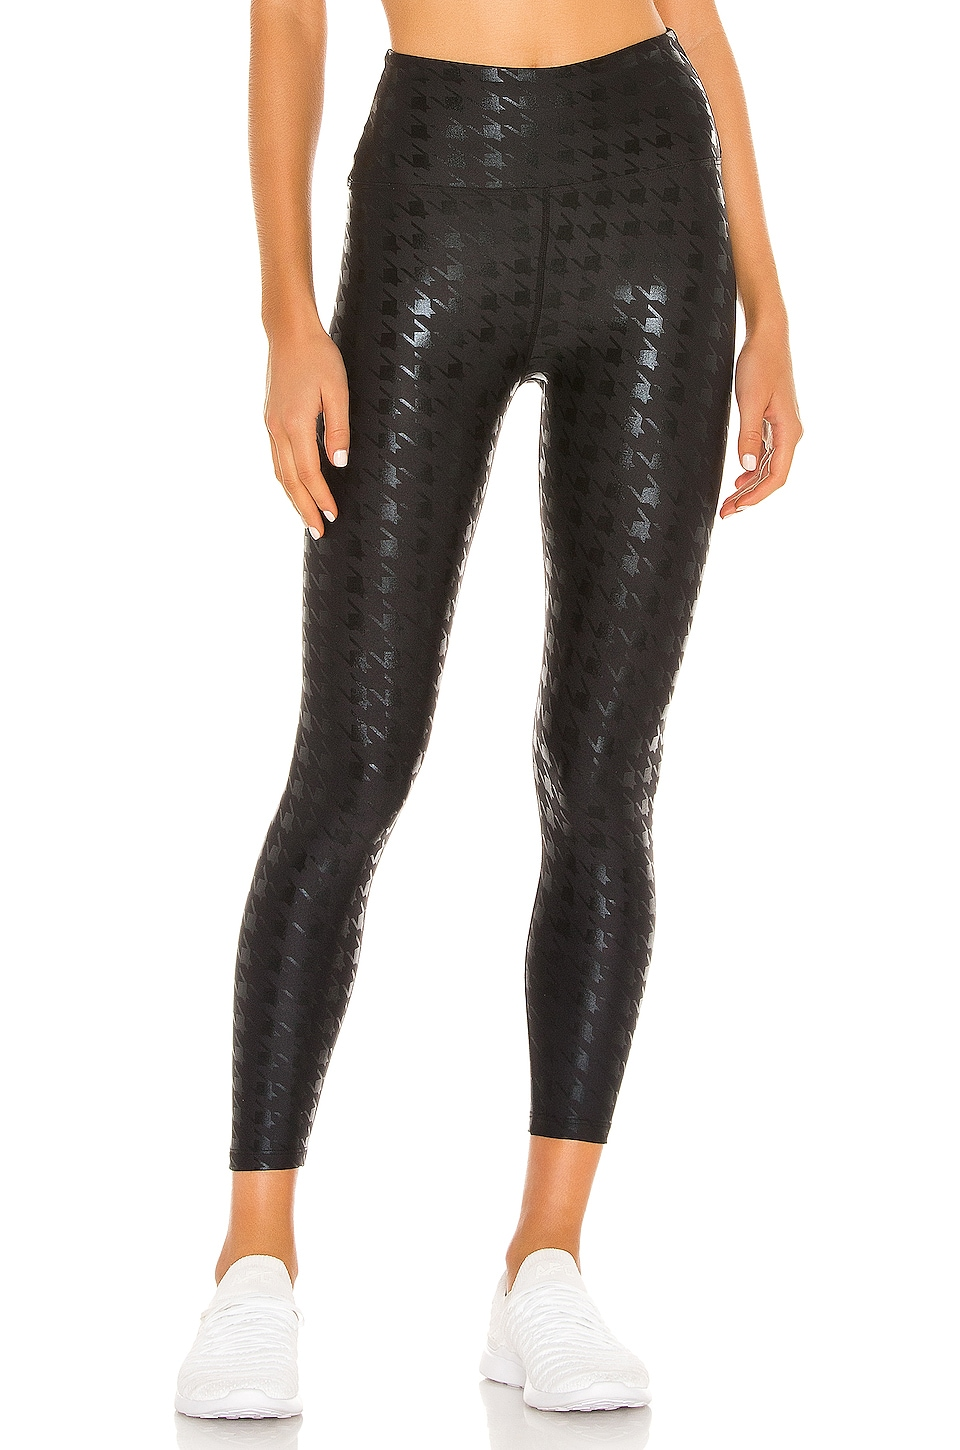 YEAR OF OURS Disco Yos Sports Legging in Black